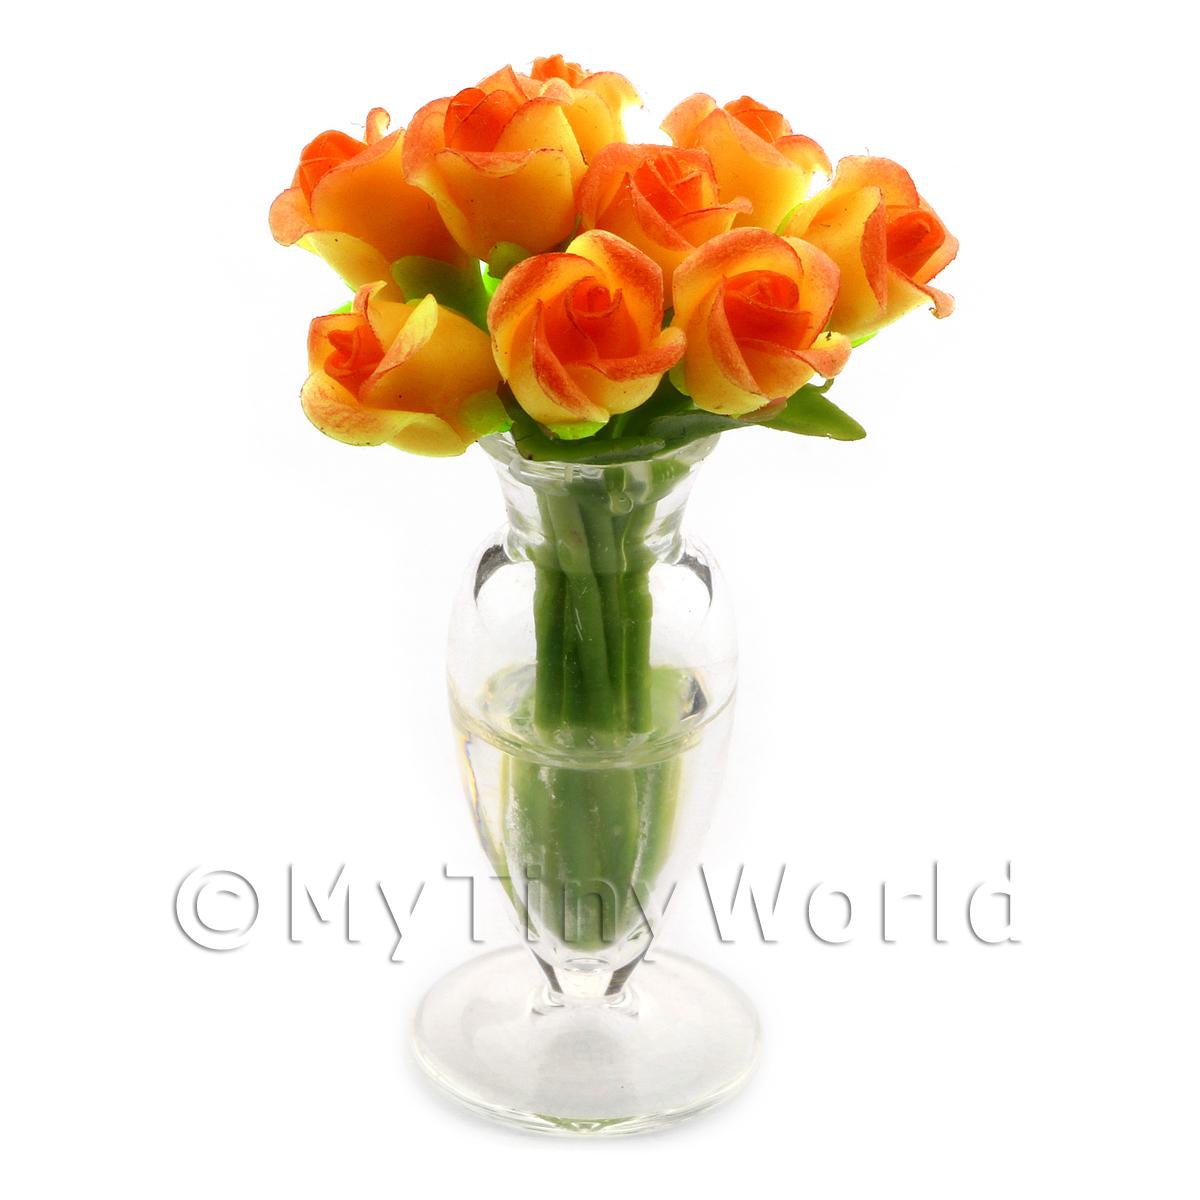 9 Miniature Yellow   Red Roses In A Glass Vase